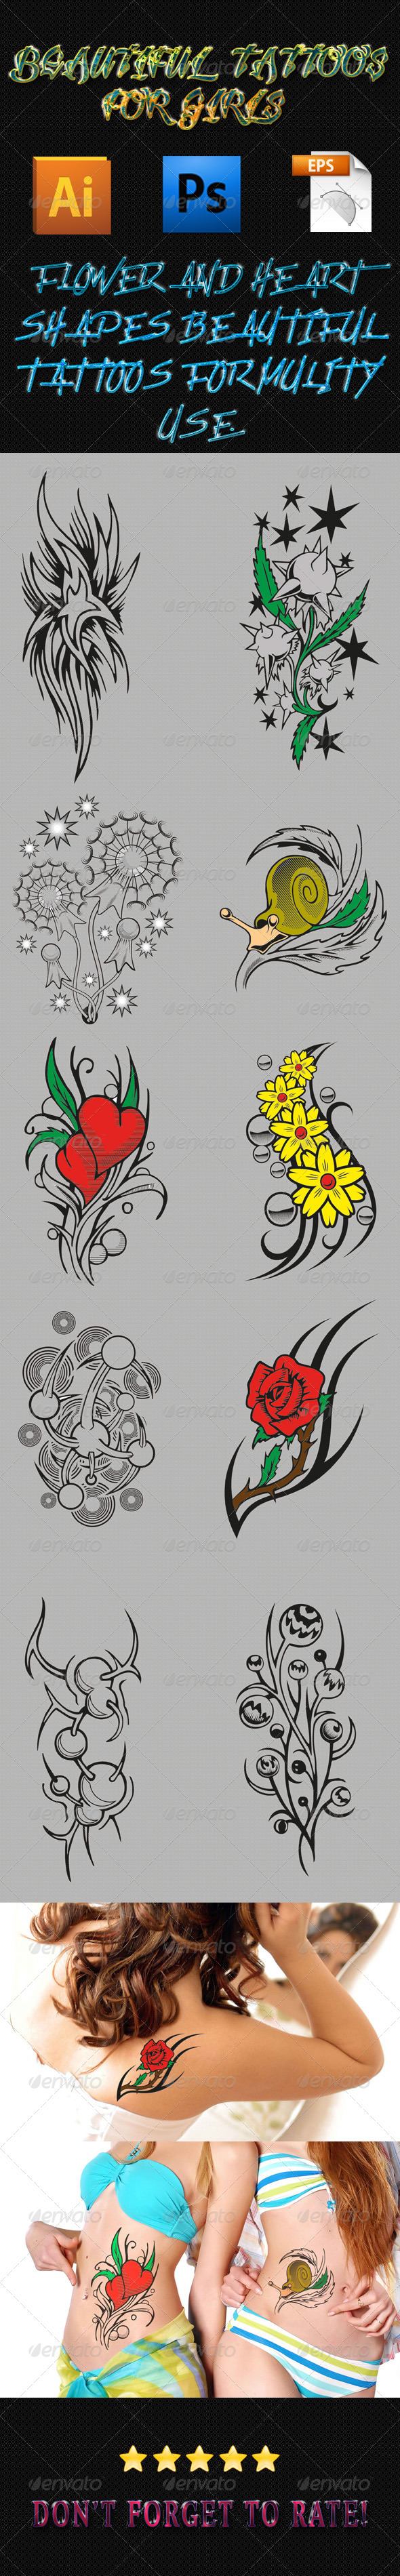 Girls Tattoos 03 - Tattoos Vectors